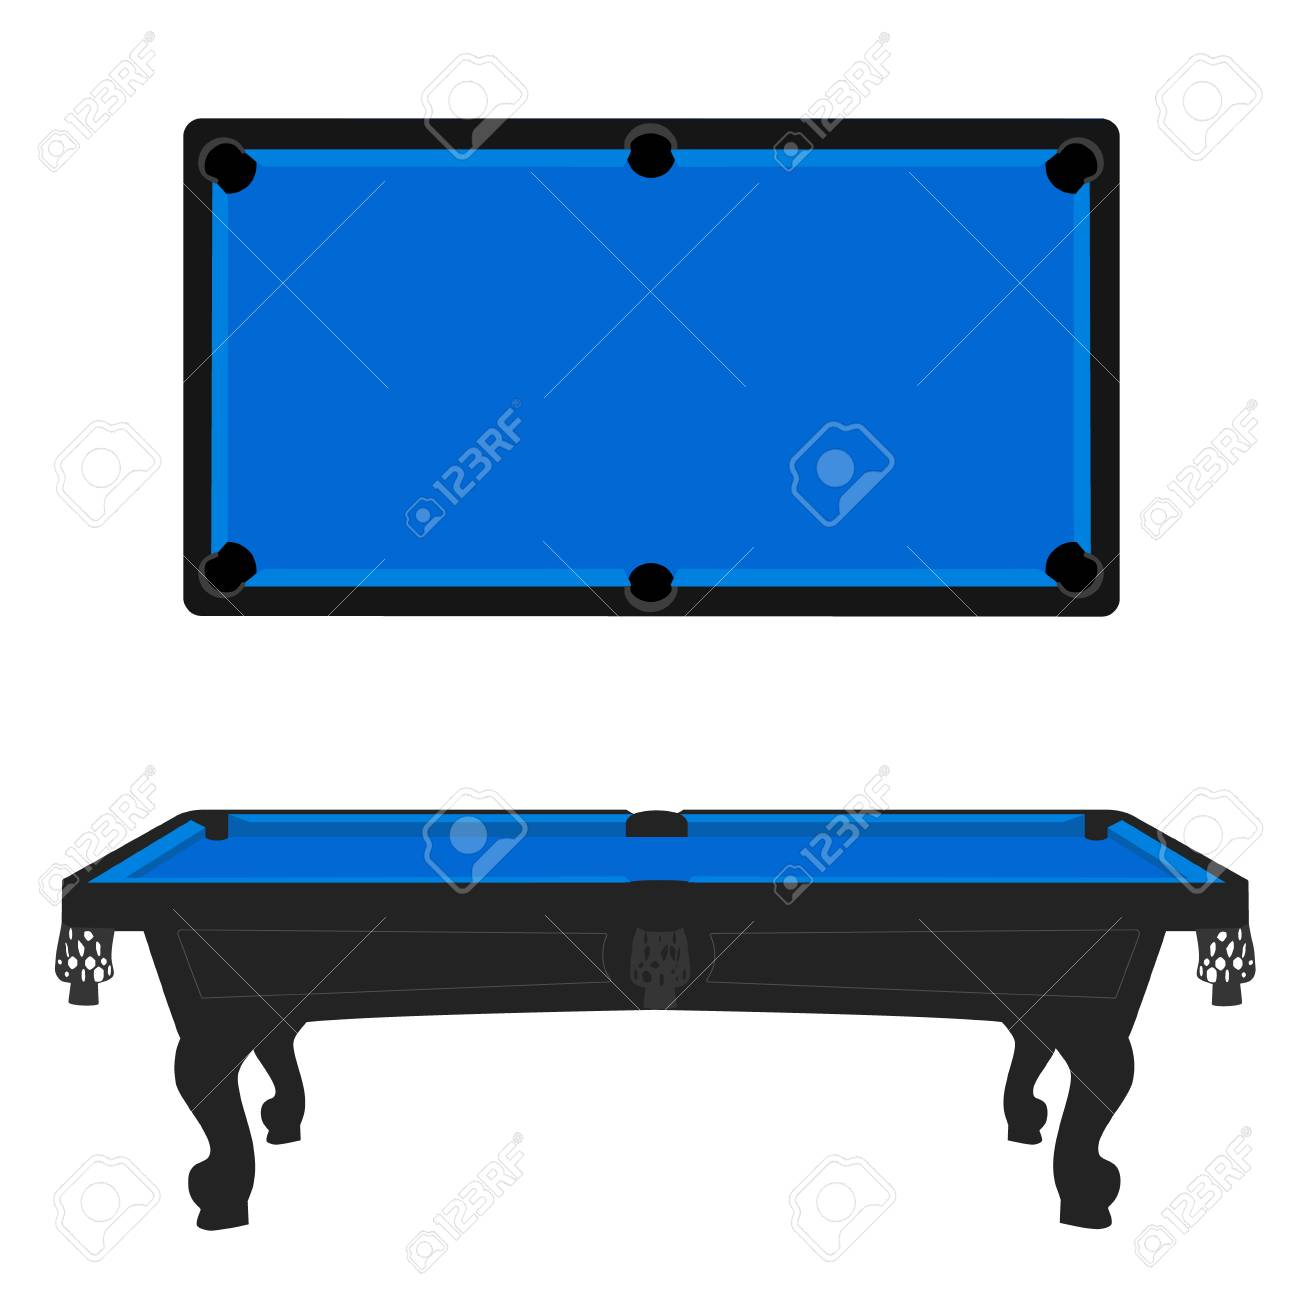 Raster Illustration Retro Vintage Pool Table With Blue Cloth - Retro pool table